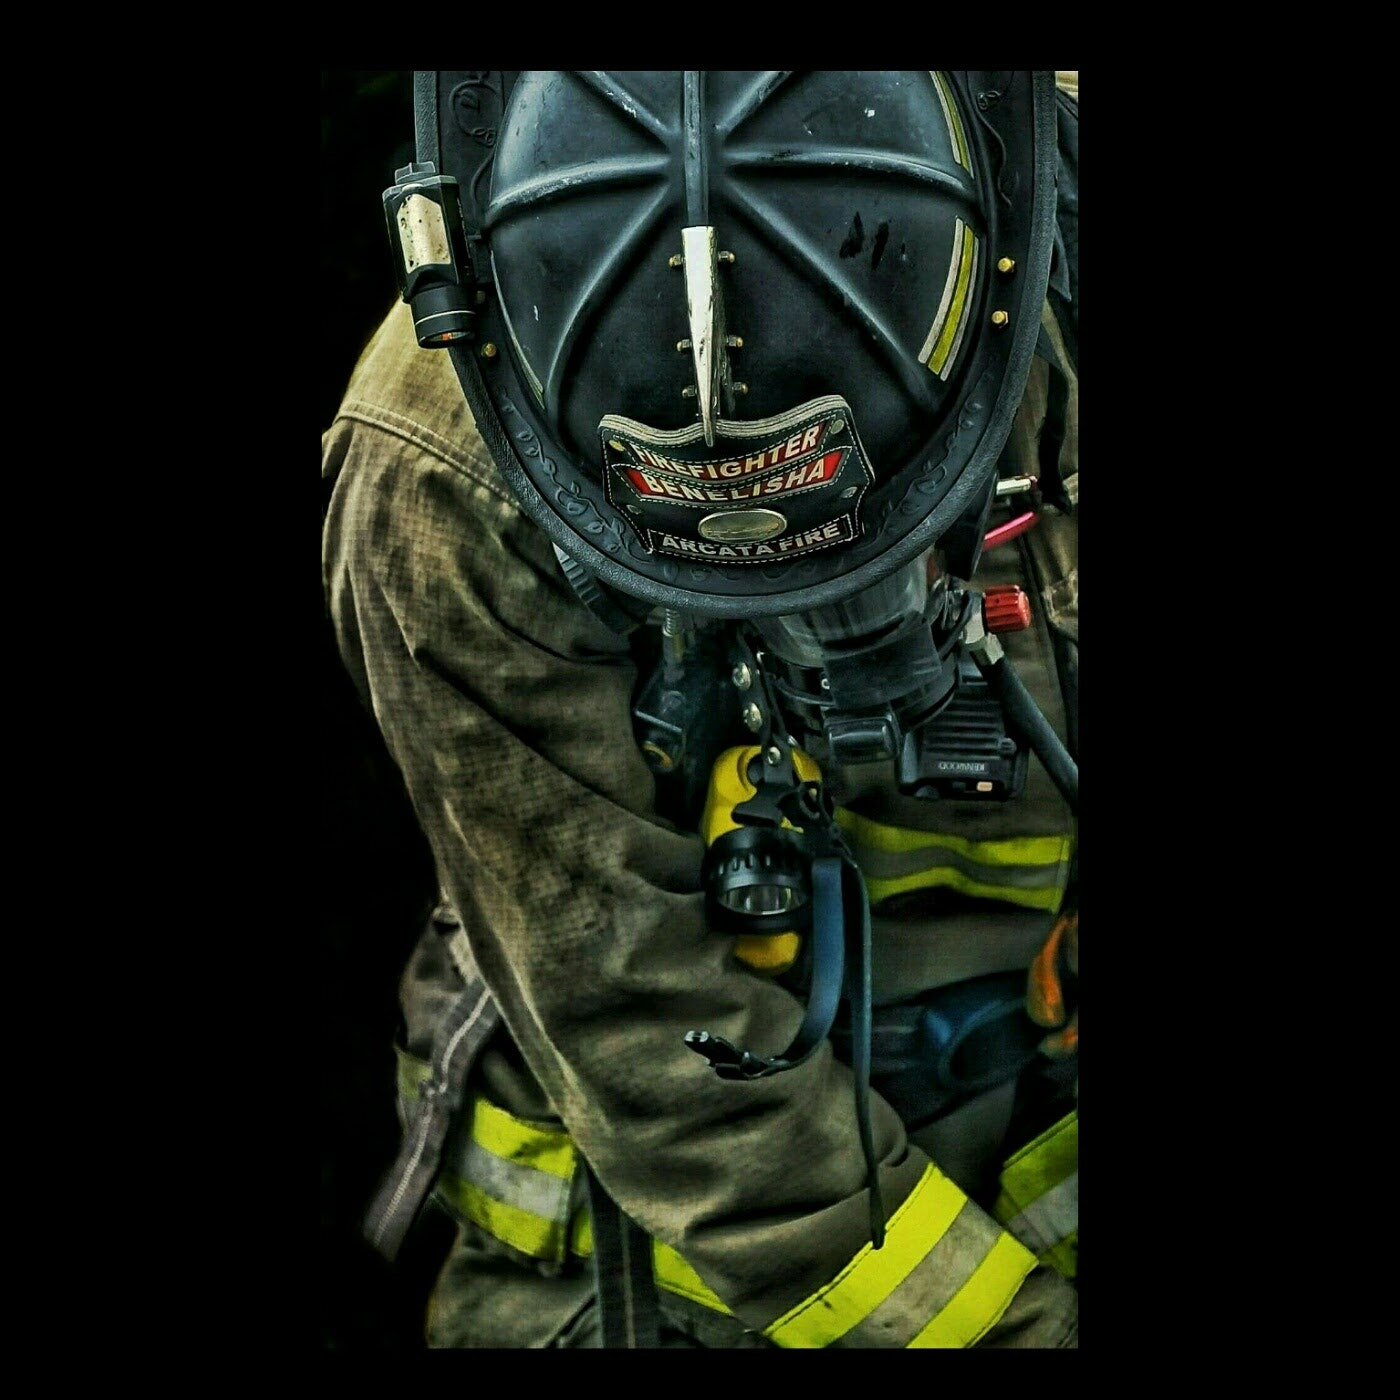 Fire fighter with safety gear.